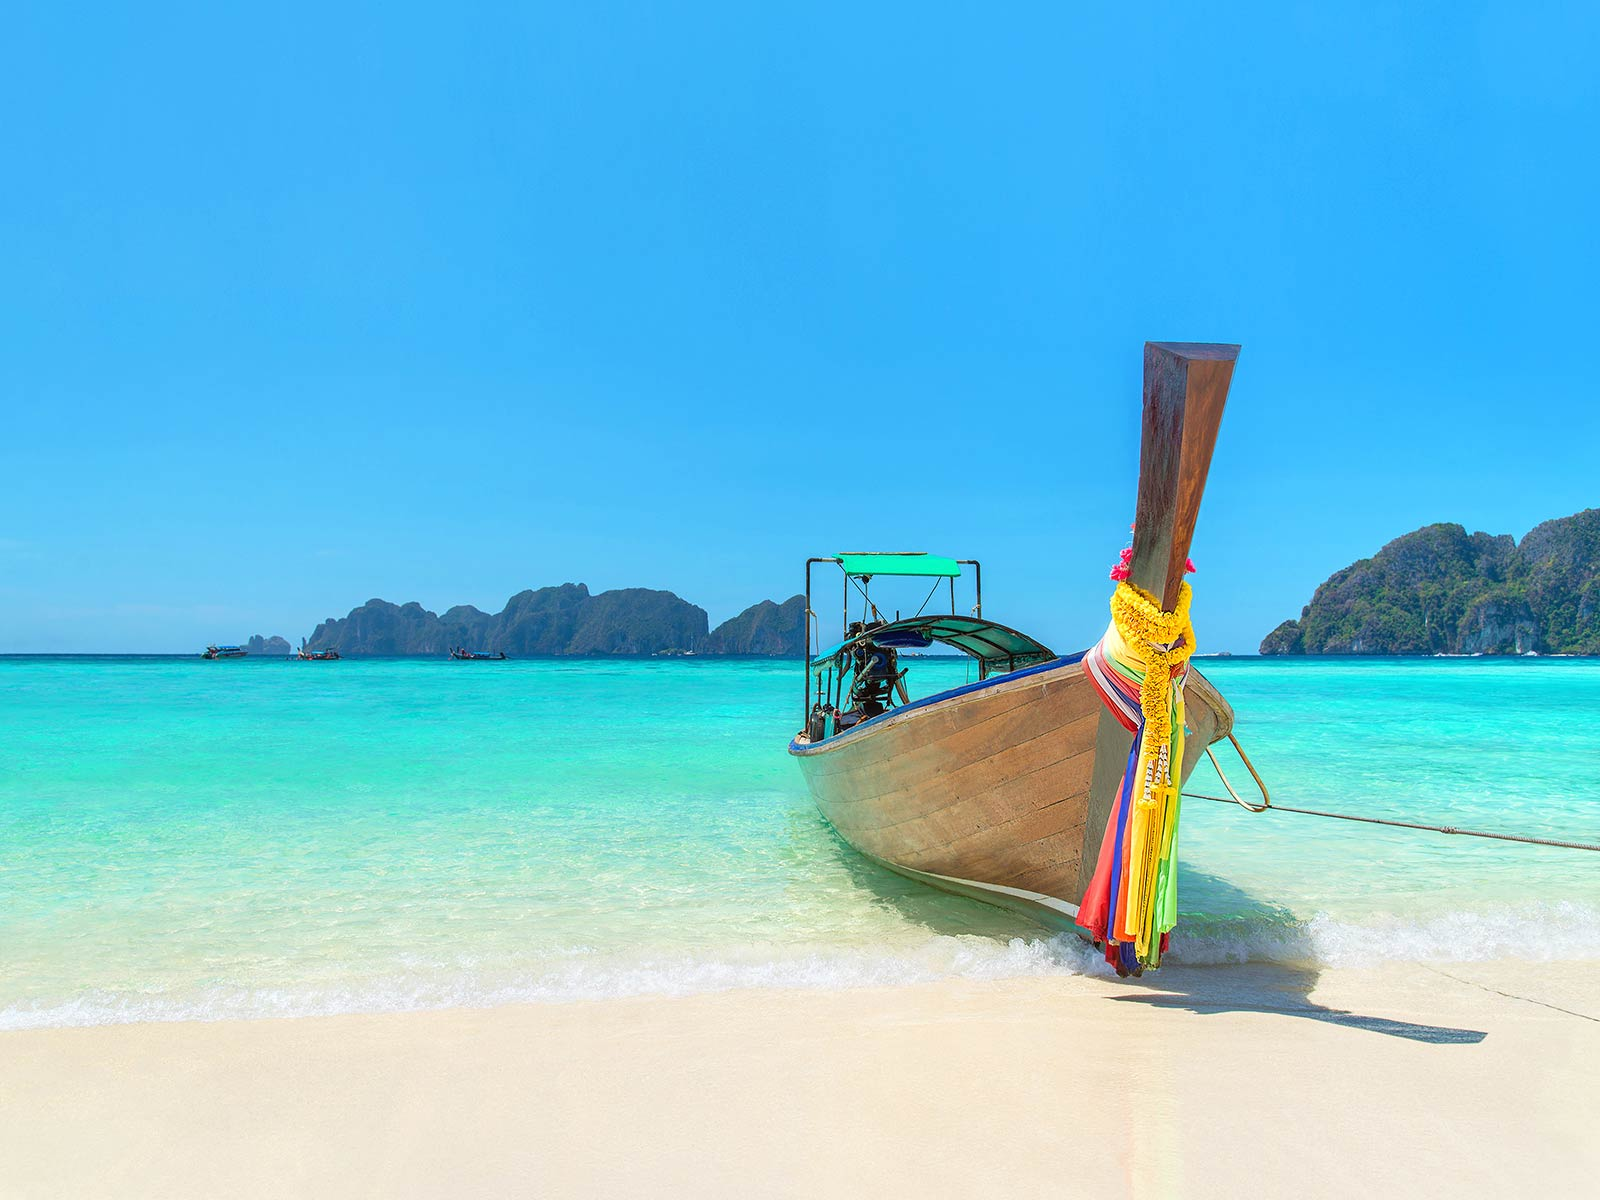 Traditional boat on beach in Phuket Thailand